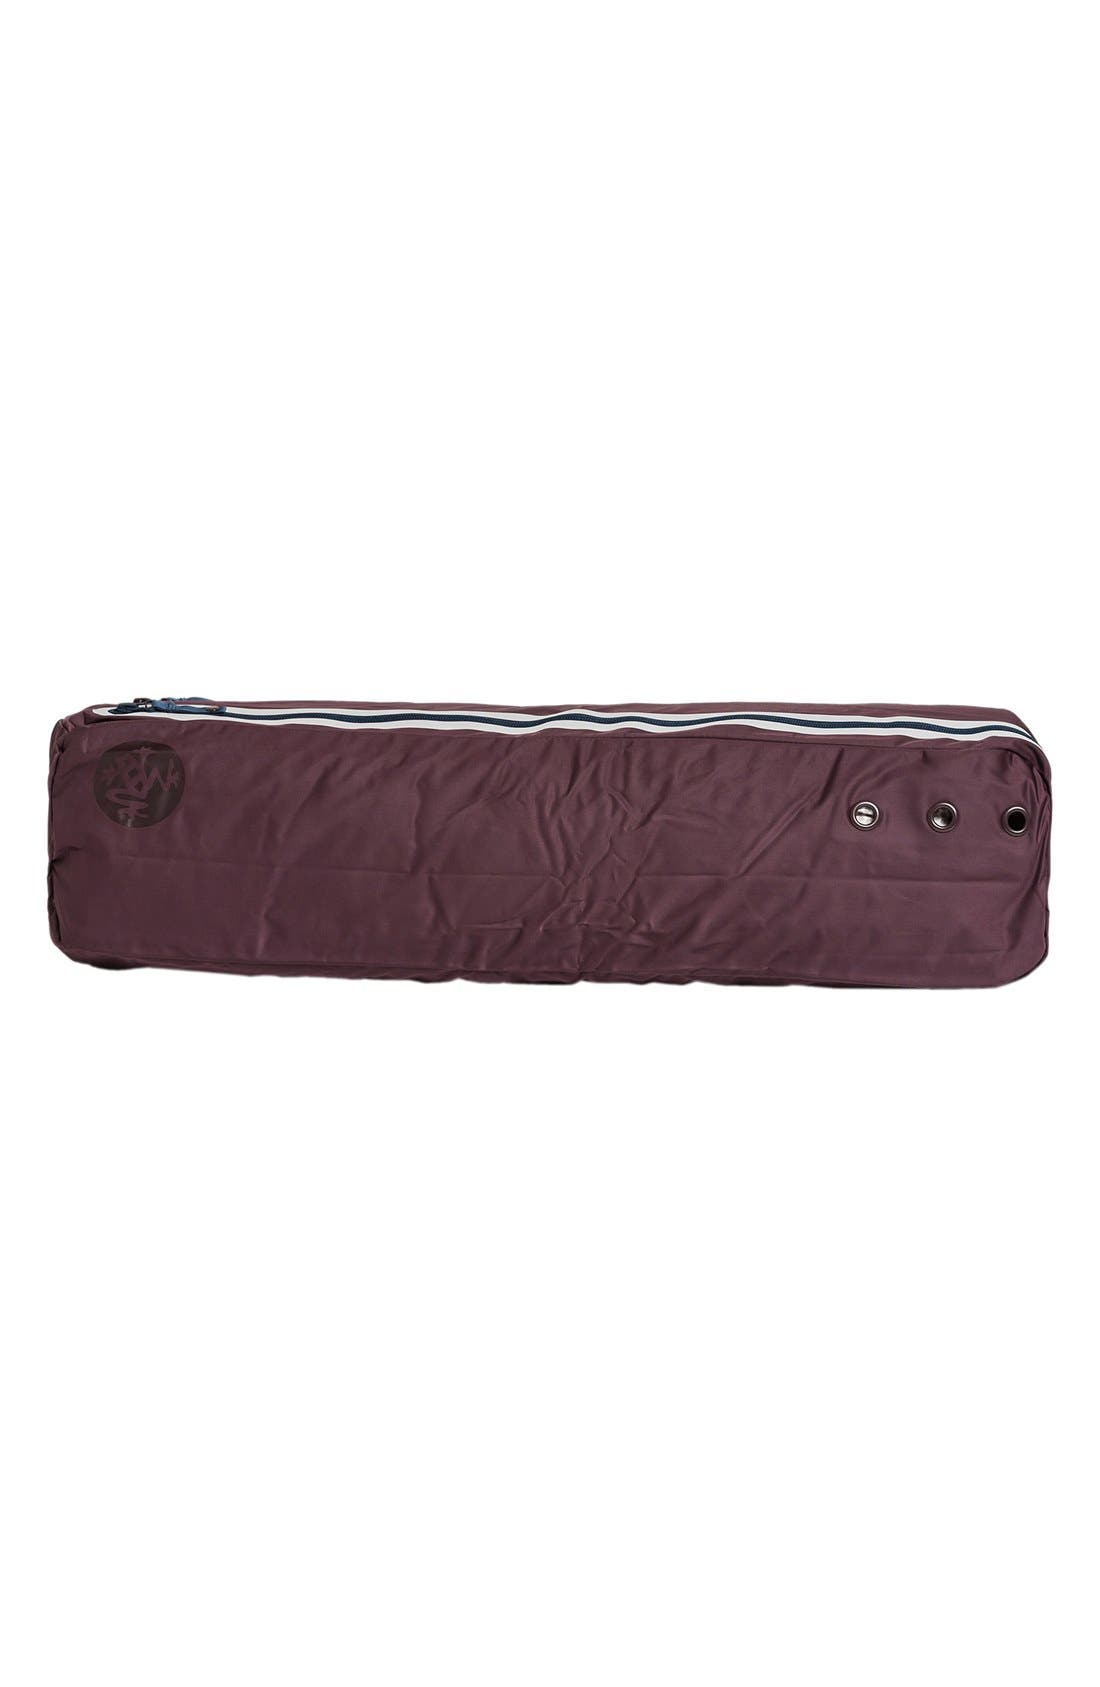 MANDUKA 'Go Steady 2.0' Yoga Mat Carrier